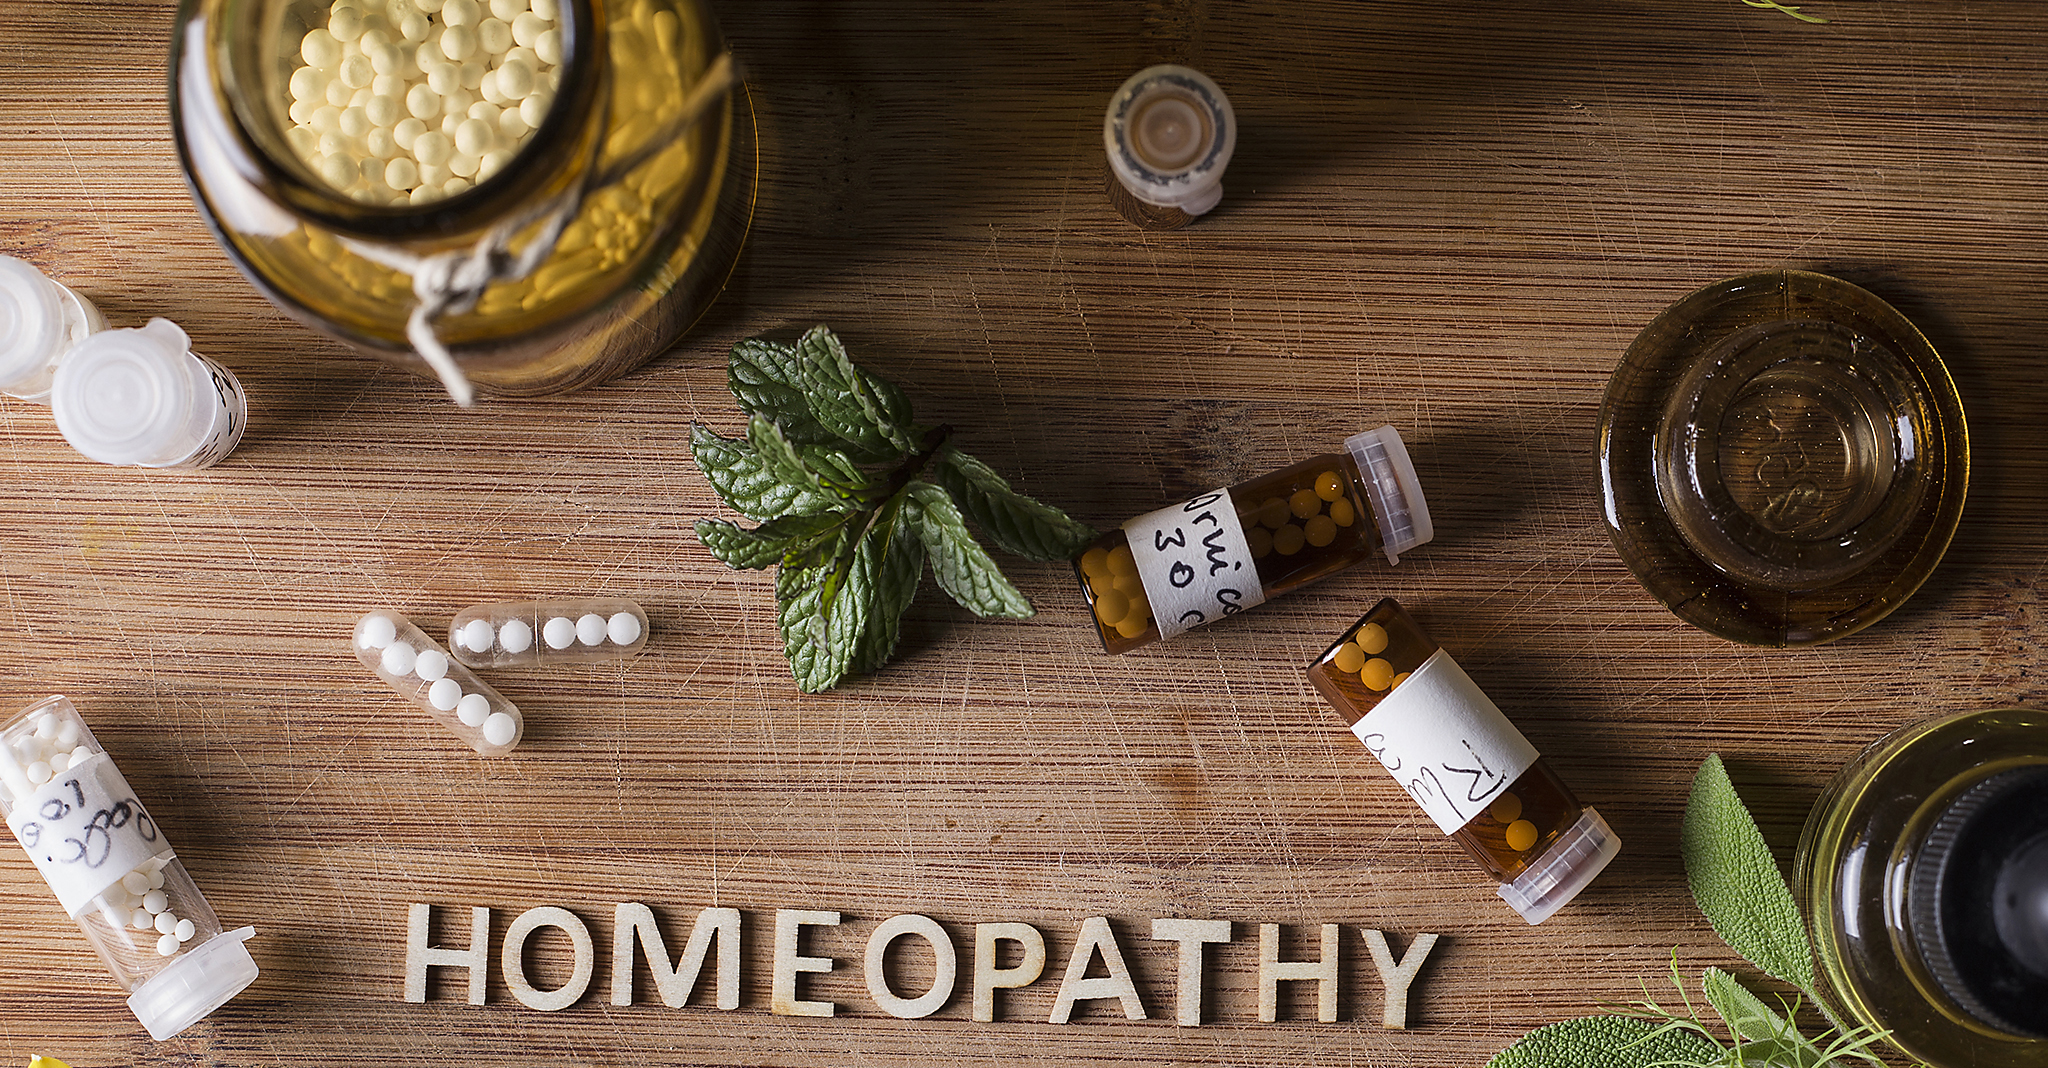 Homeopathy: a gentle cure or a placebo?